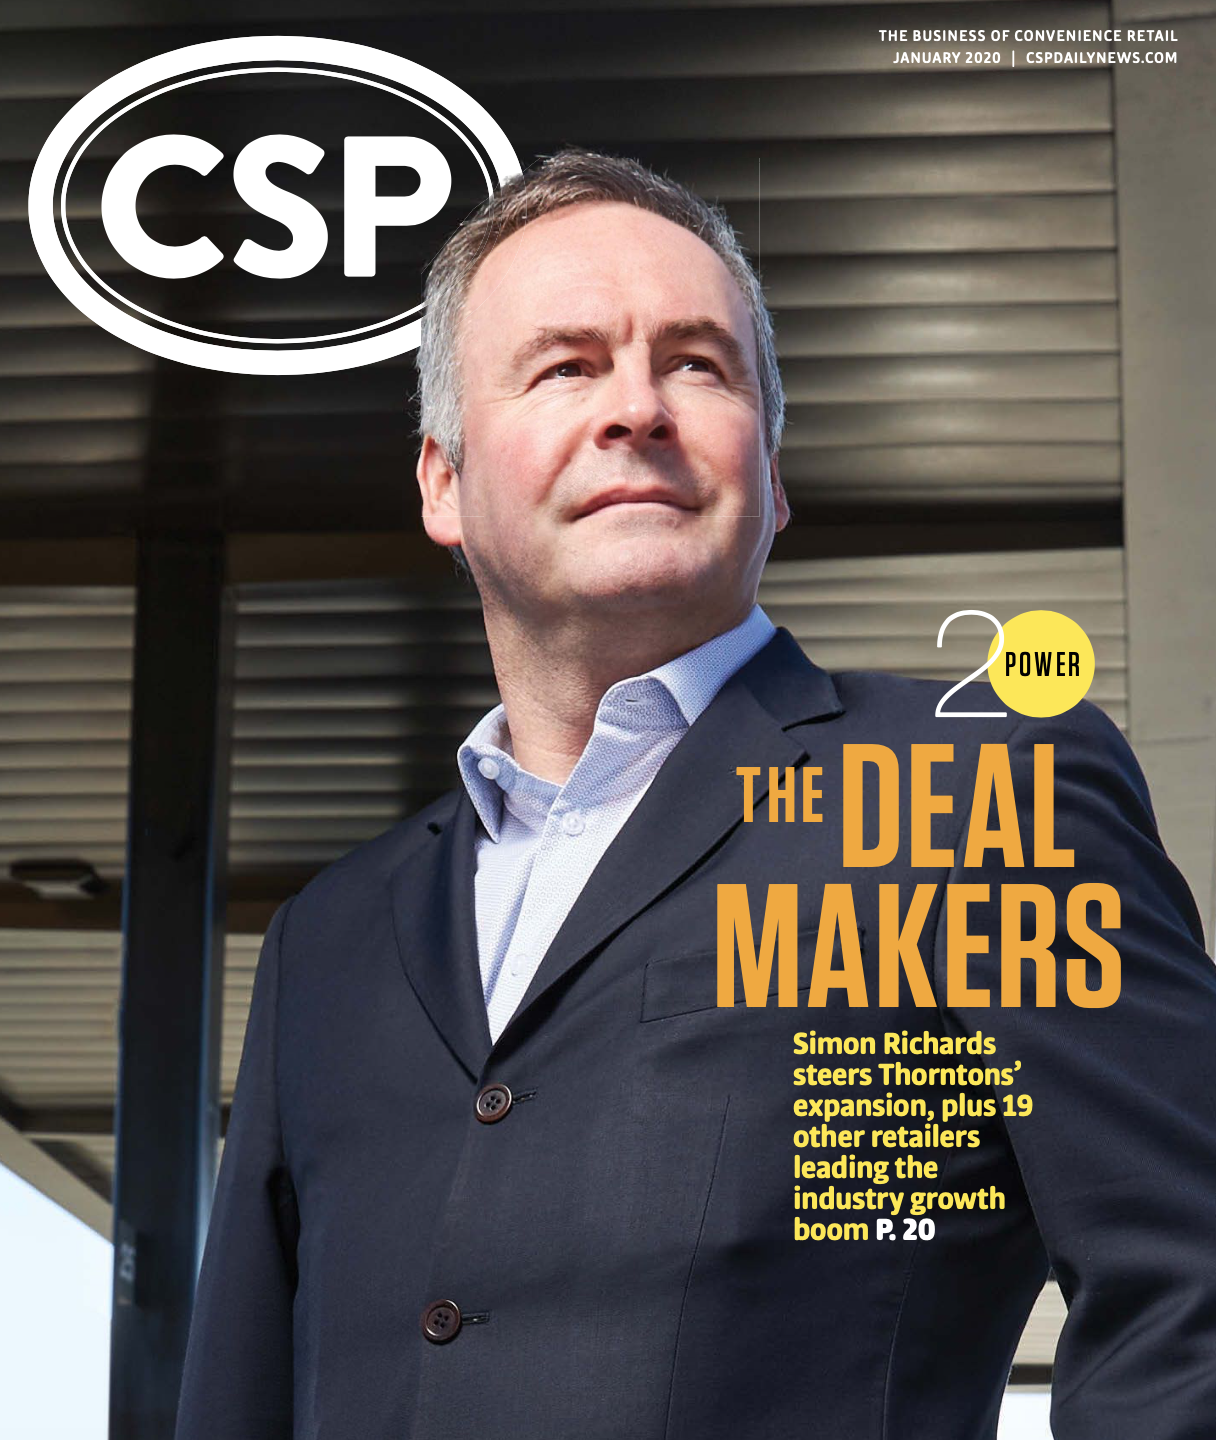 CSP Daily News Magazine January 2020 | Power 20: The Deal Makers Issue